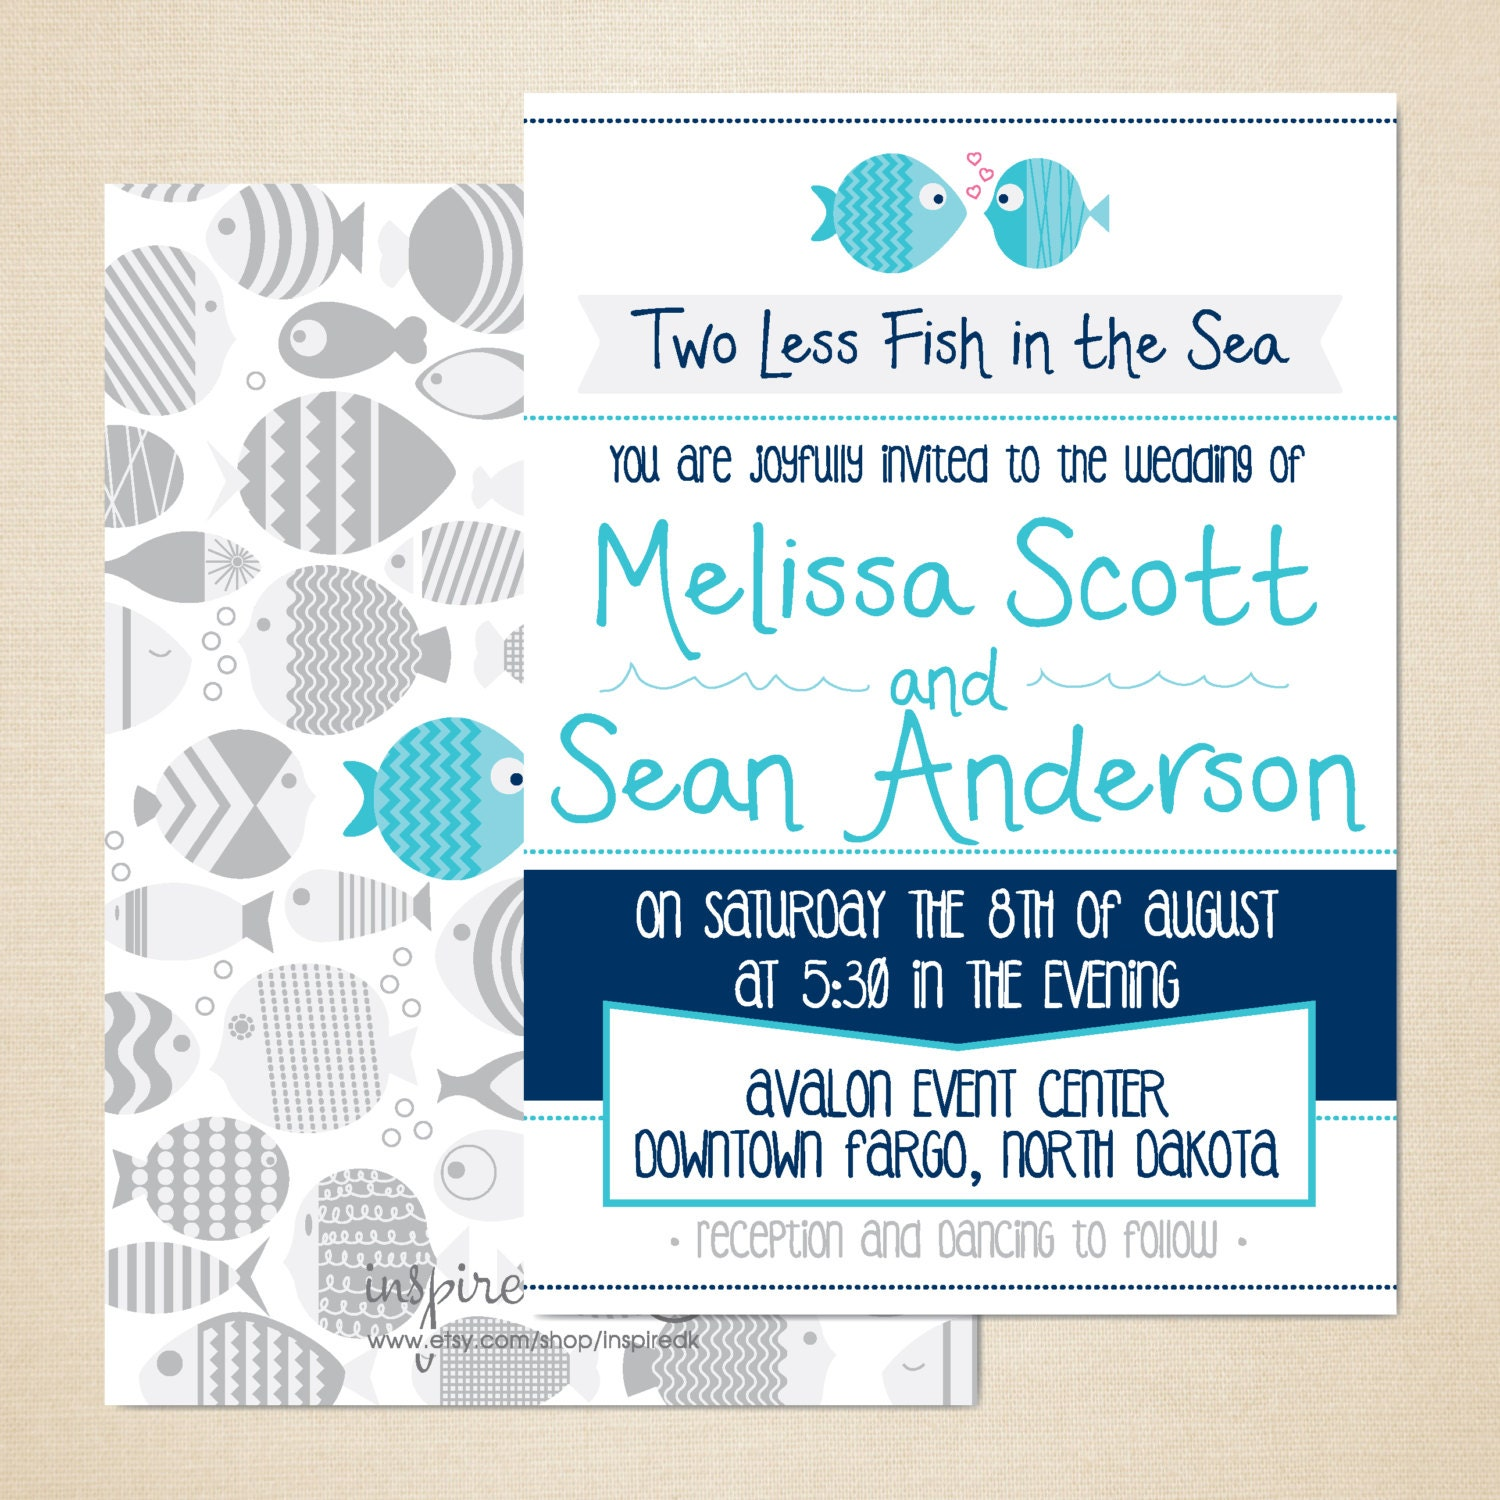 Two less fish in the sea wedding invitation 5x7 diy by for Fishing wedding invitations